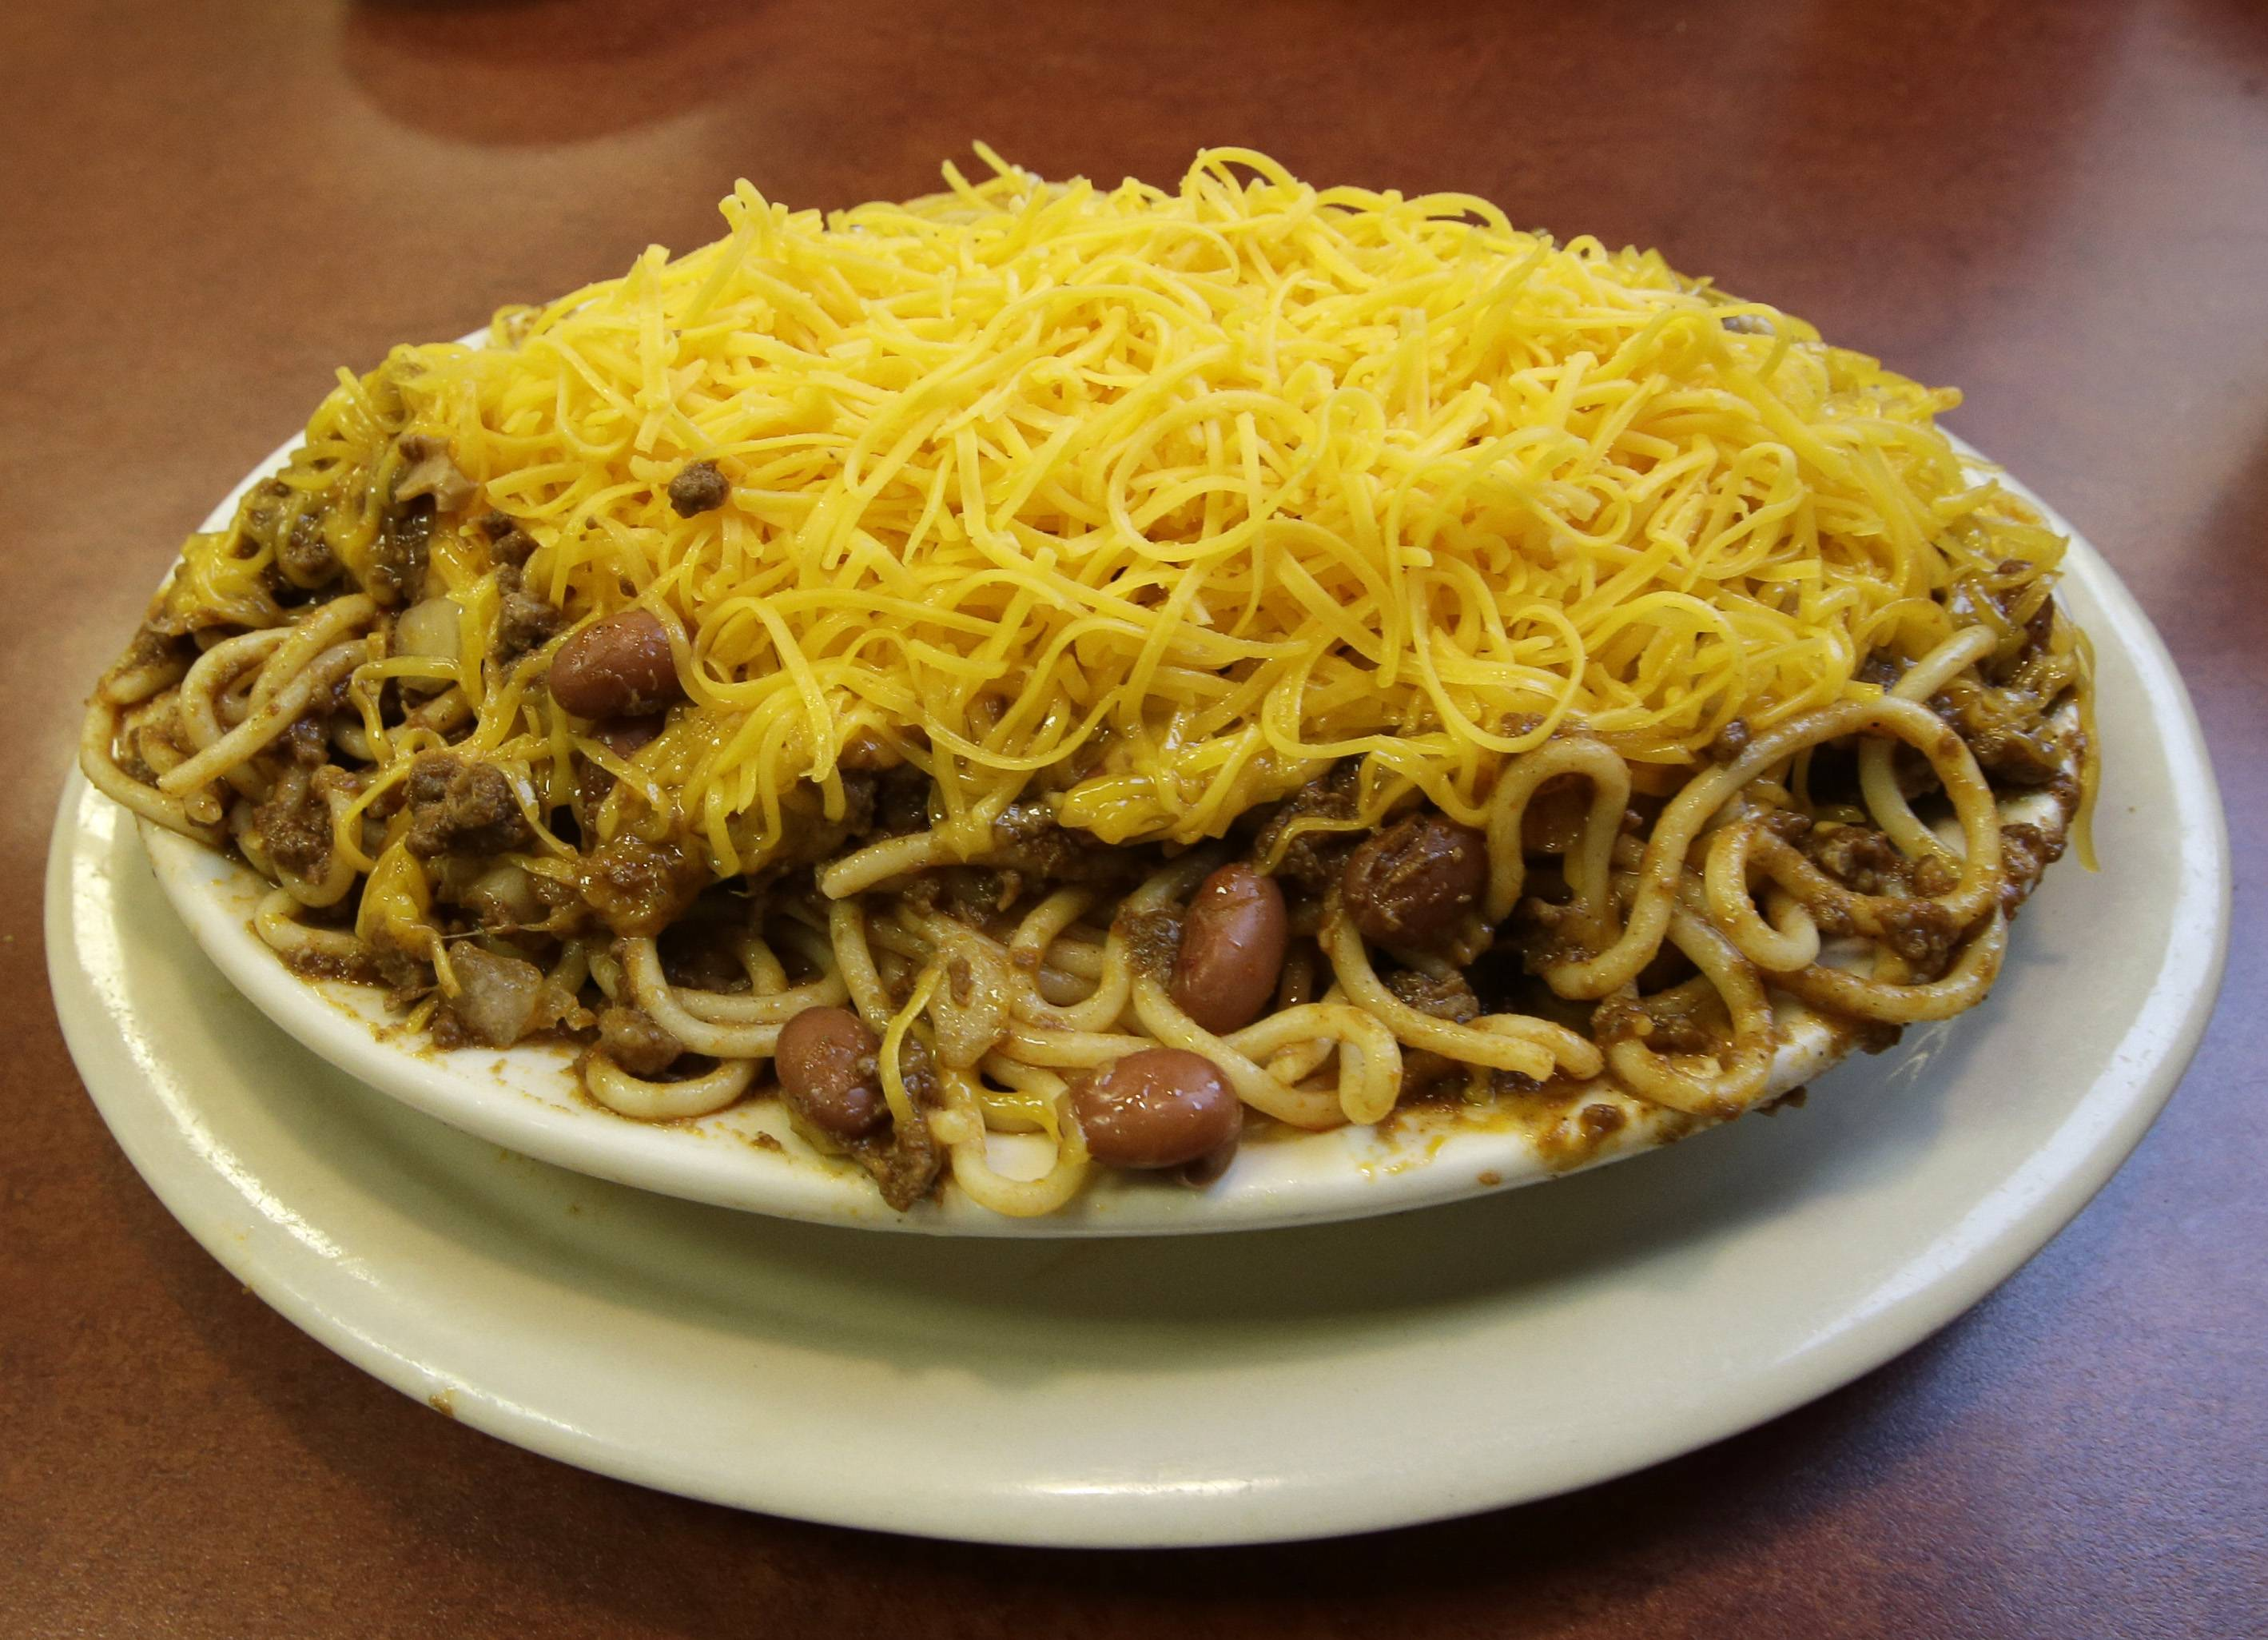 Cincinnati is known for its quirky version of chili, a pile of sweet, cinnamon-flavored meat sauce served over a plate of spaghetti noodles and topped with a heaping mound of shredded cheddar.